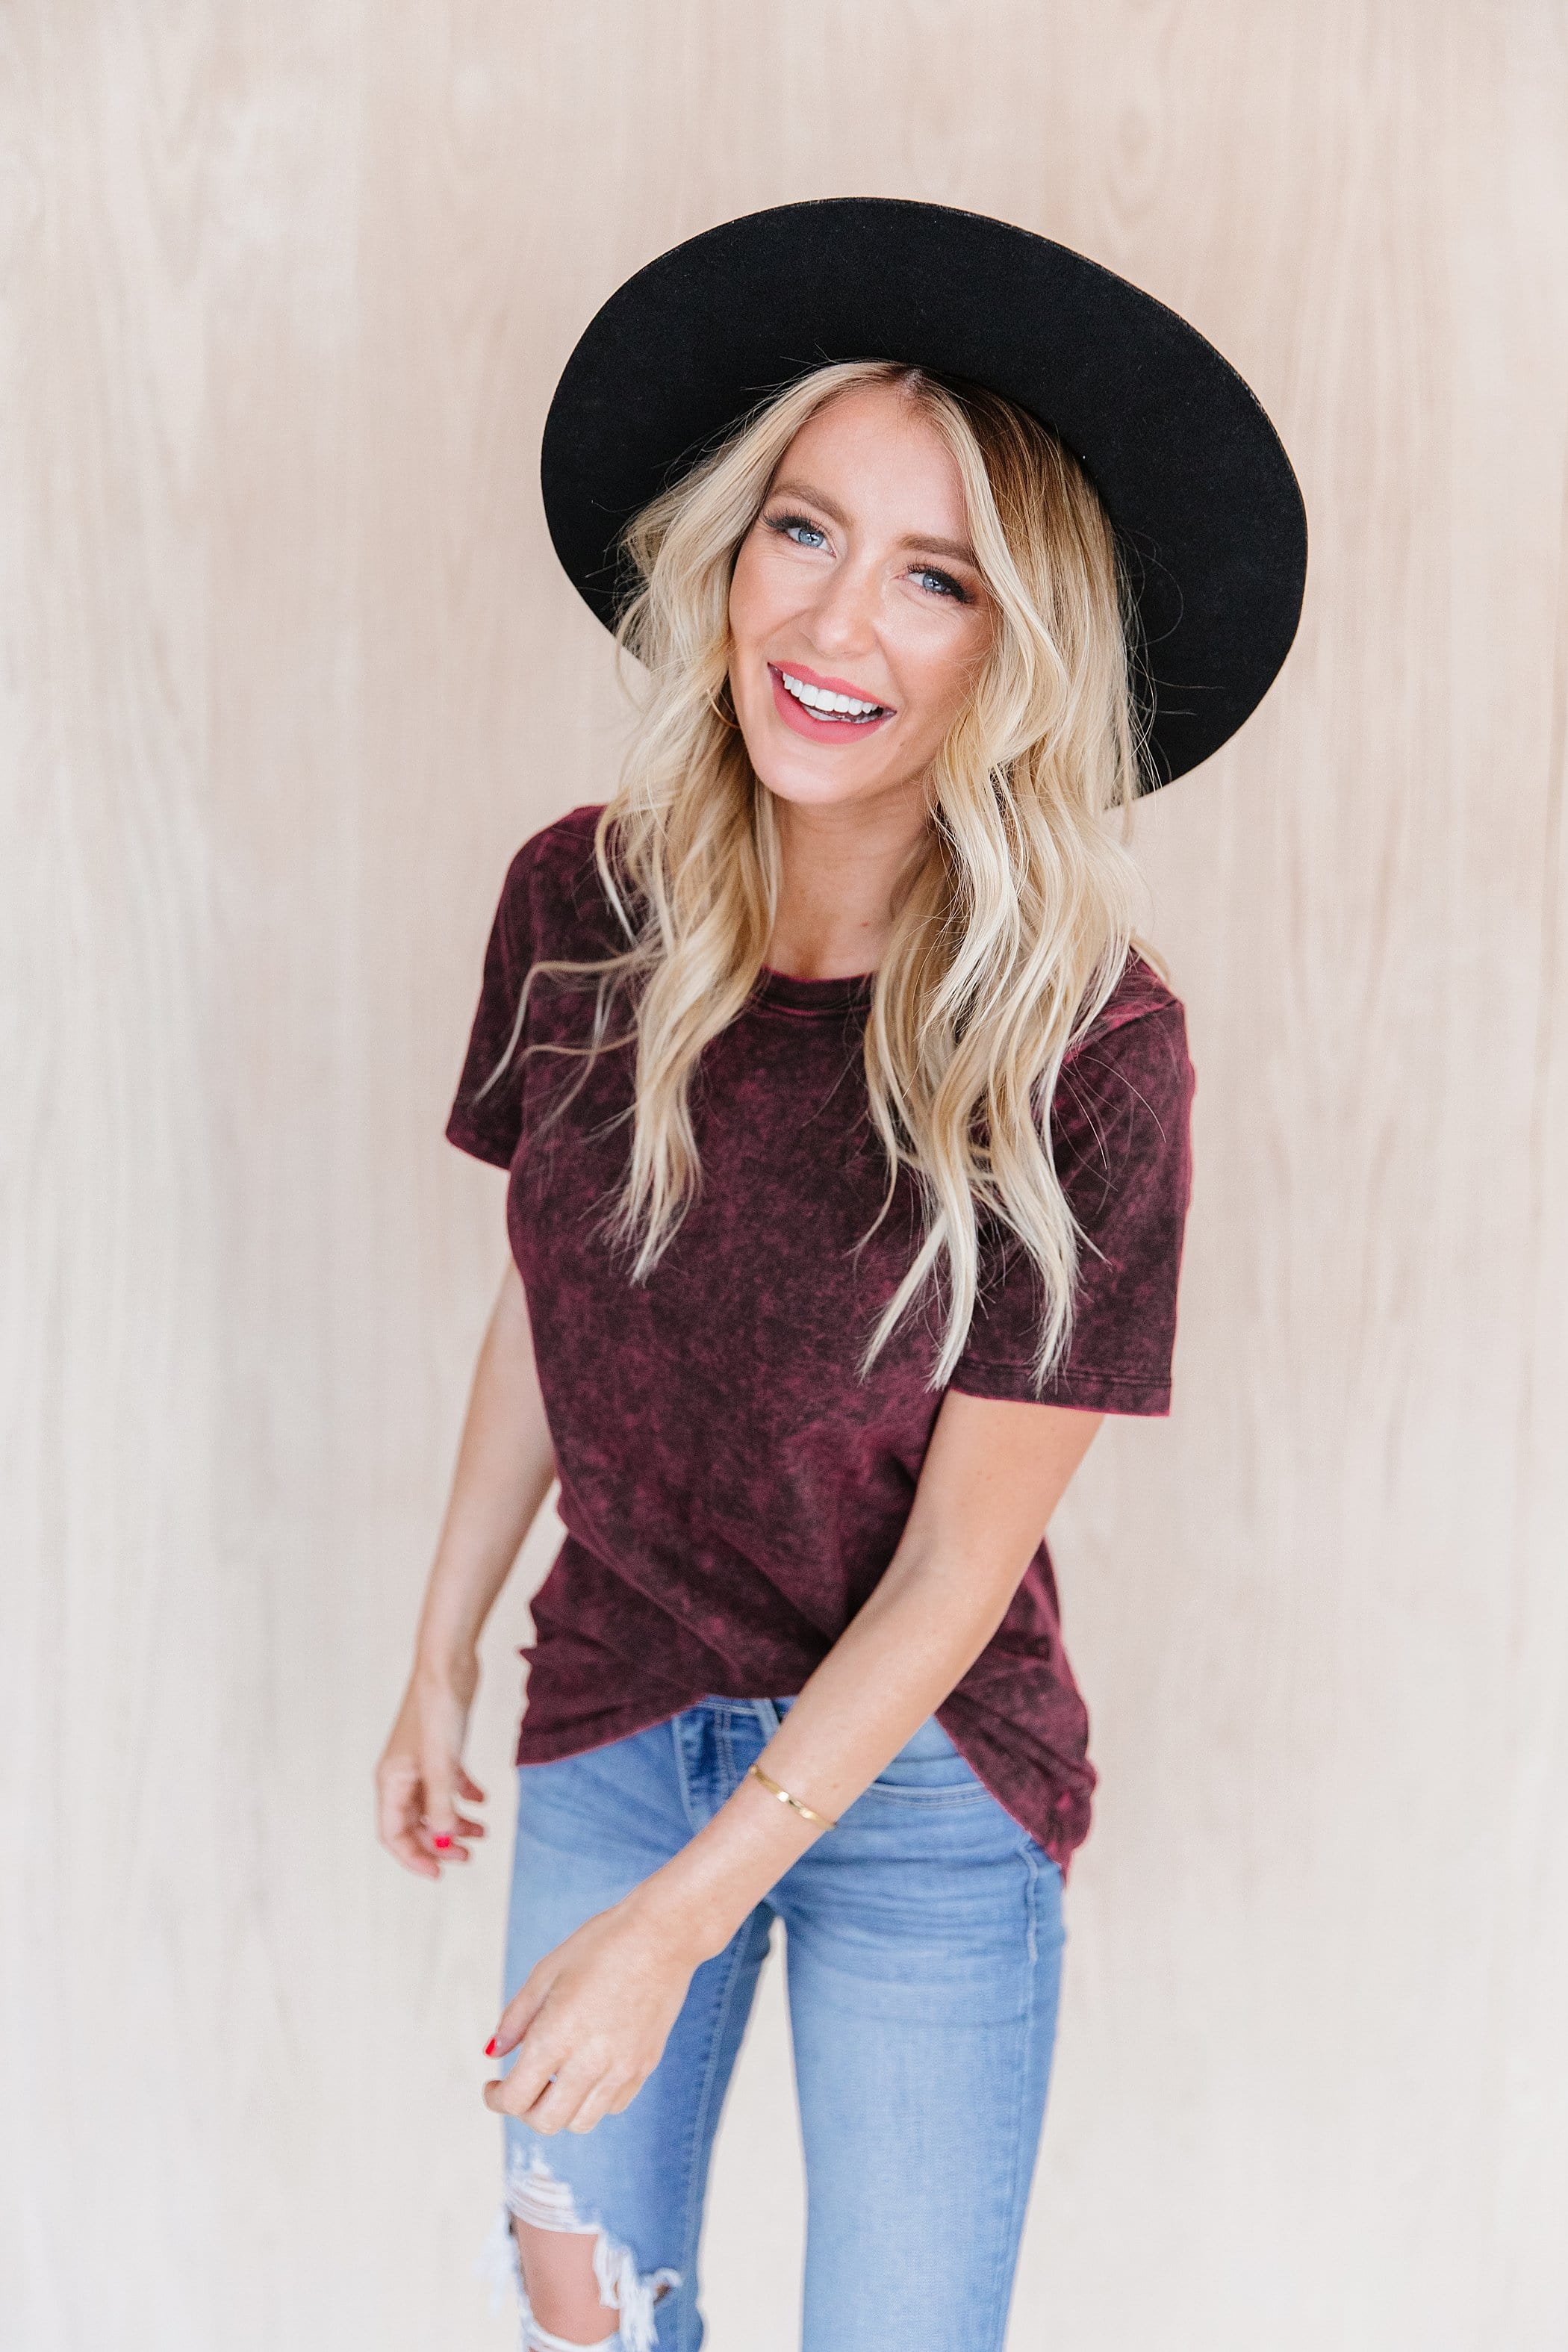 The Nicks Mineral Washed Top in Burgundy, Charcoal, Hunter Green and Plum